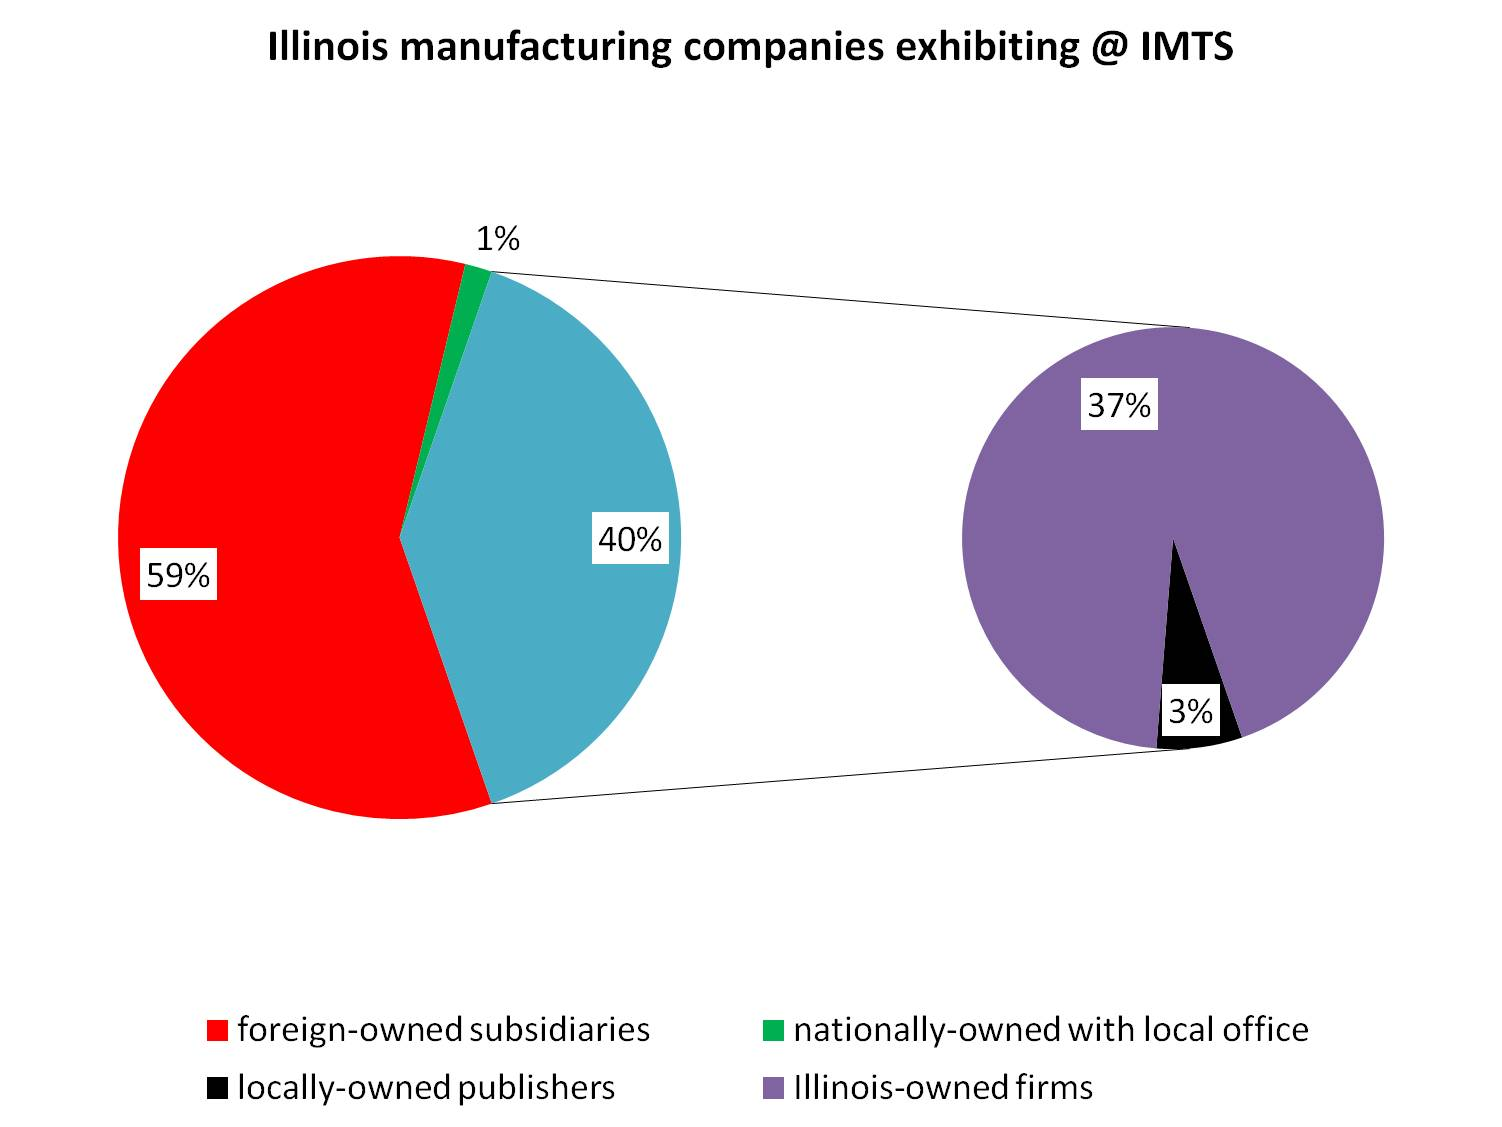 Illinois companies at the International Manufacturing Technology Show